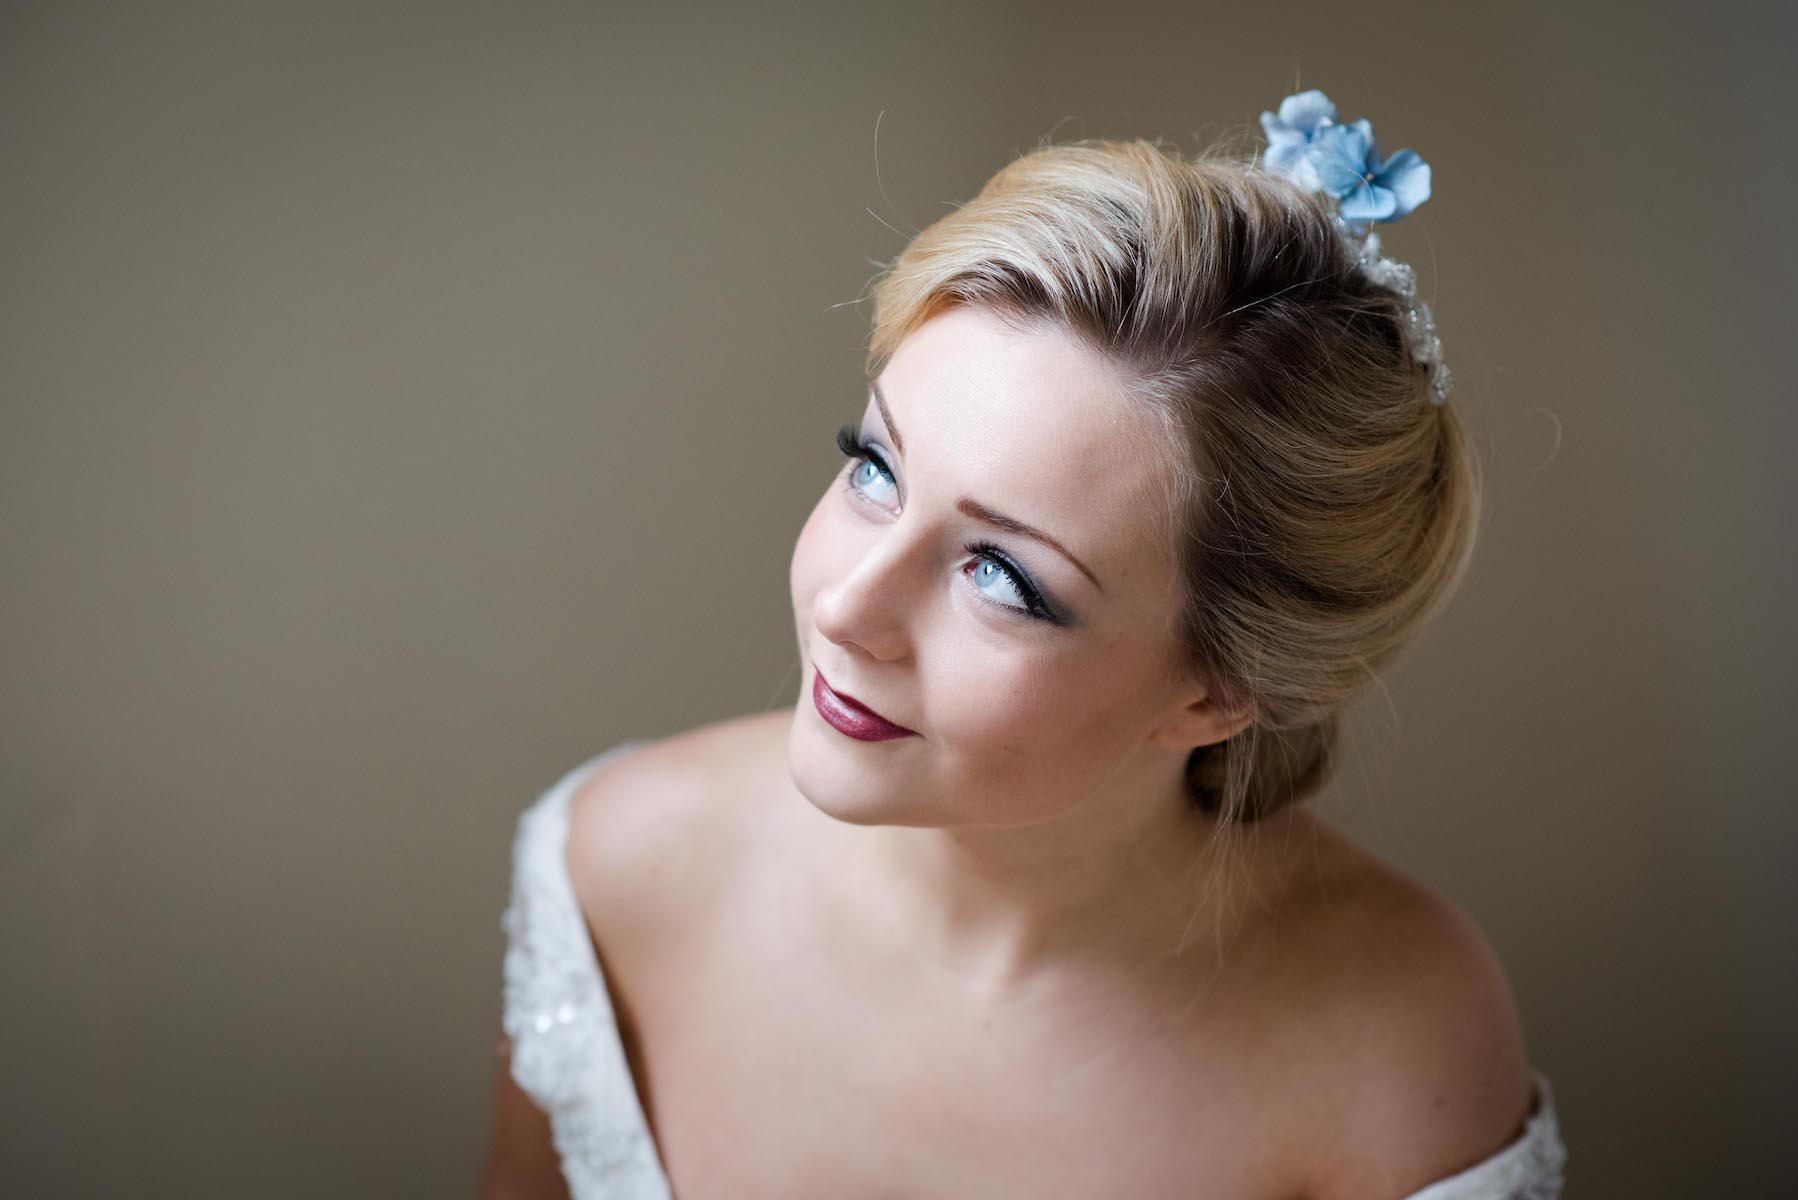 MAKE UP AND HAIR BY AMANDA STEED NORFOLK BRIDE